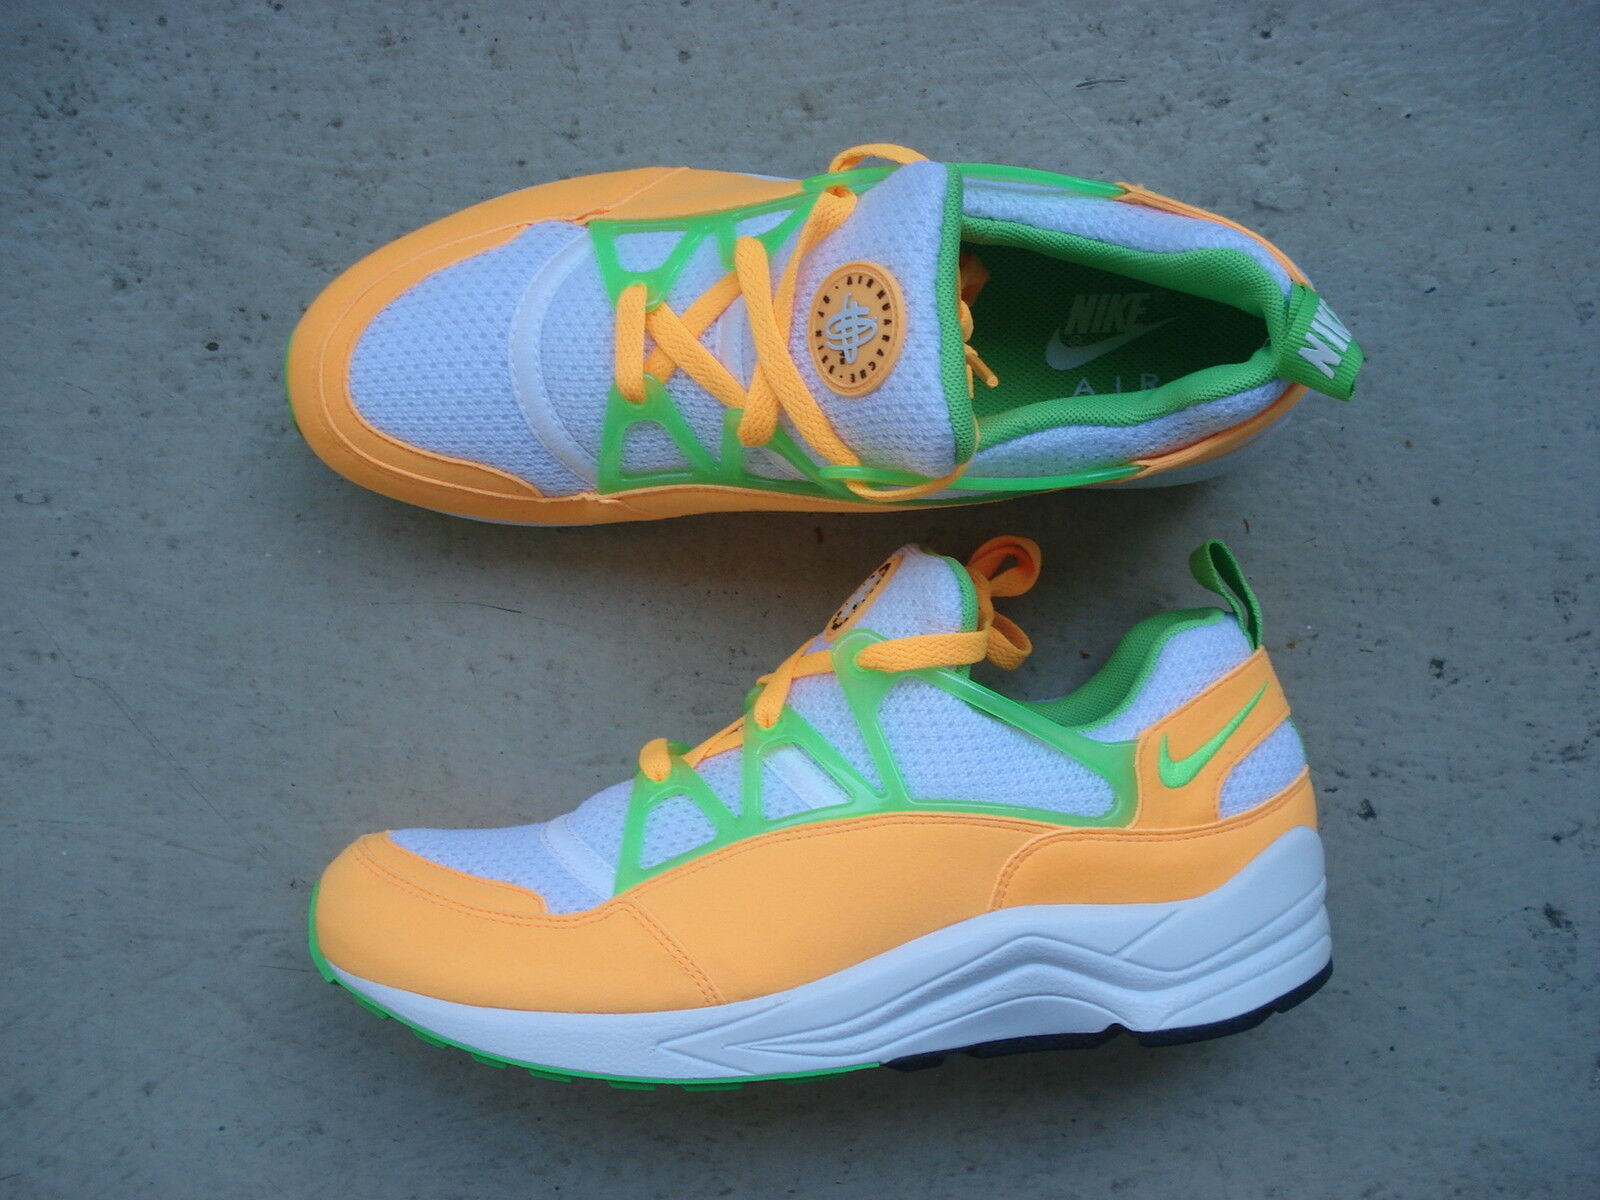 Nike Air Huarache Huarache Air Light 45.5 Atomic Mango/Action vert-blanc 846d4e